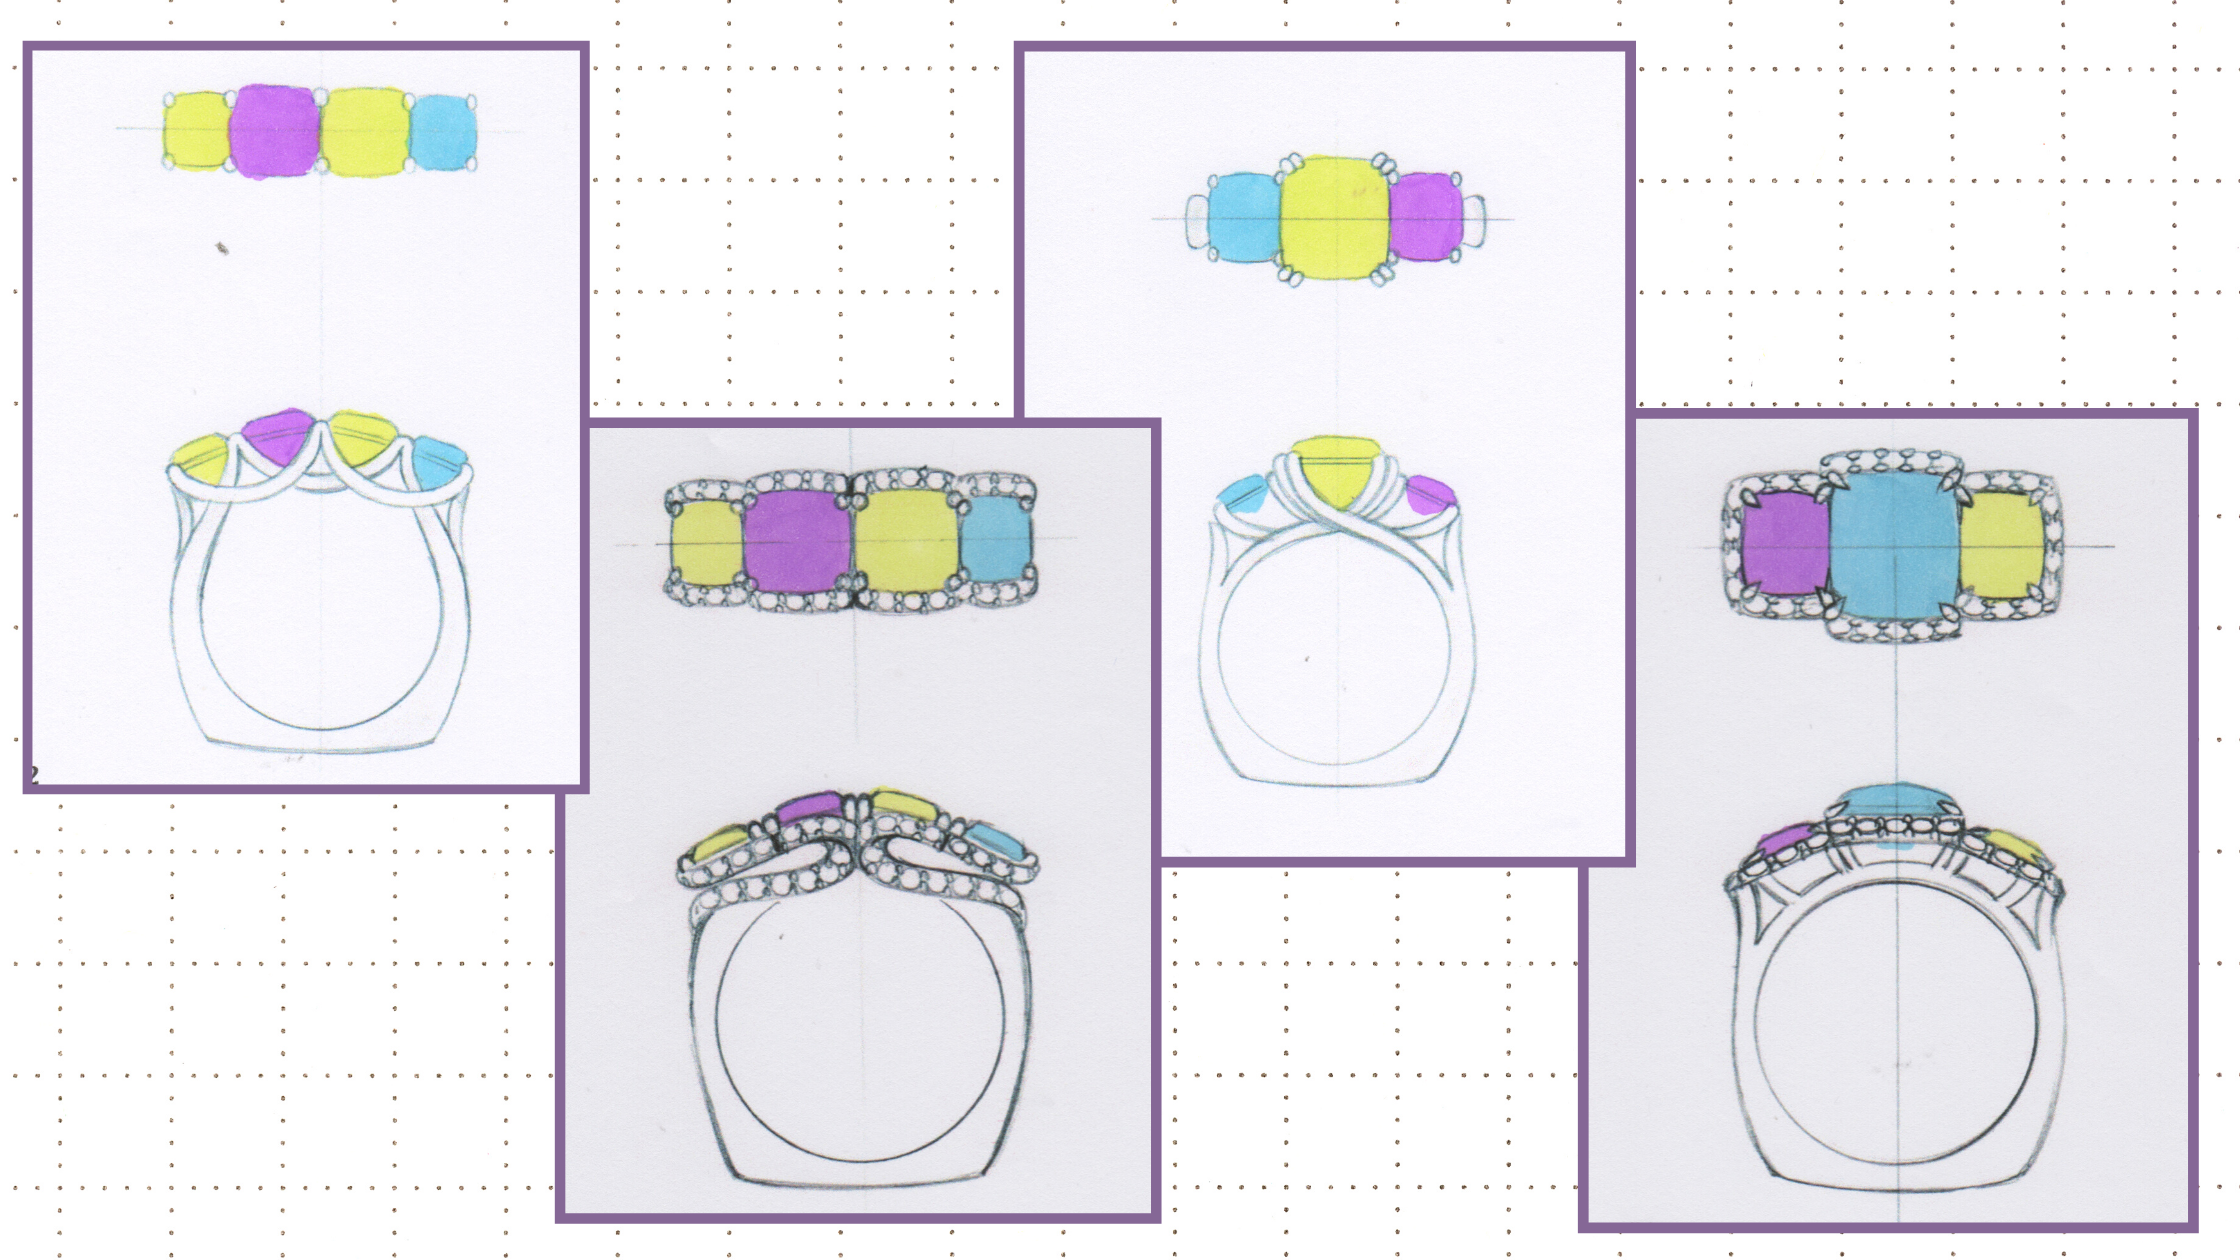 Three and four-stone ring design options